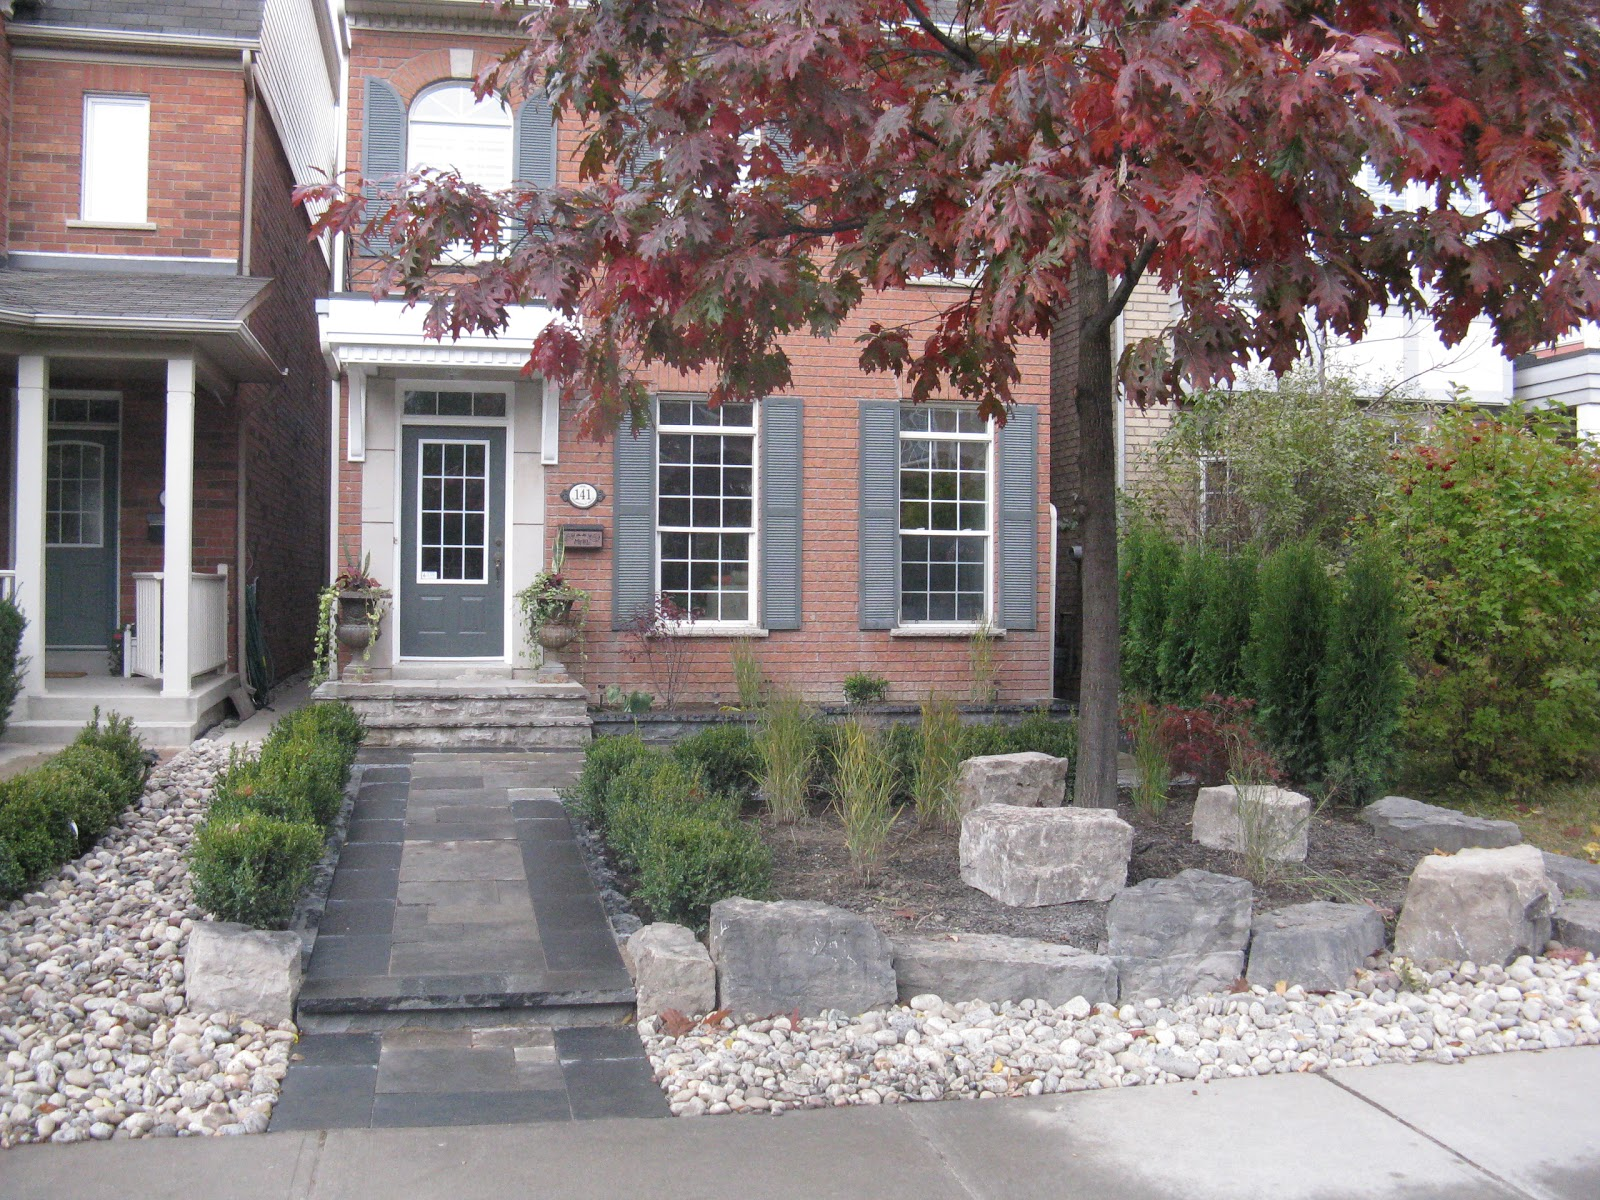 backyard and front entrace design build toronto landscaping company